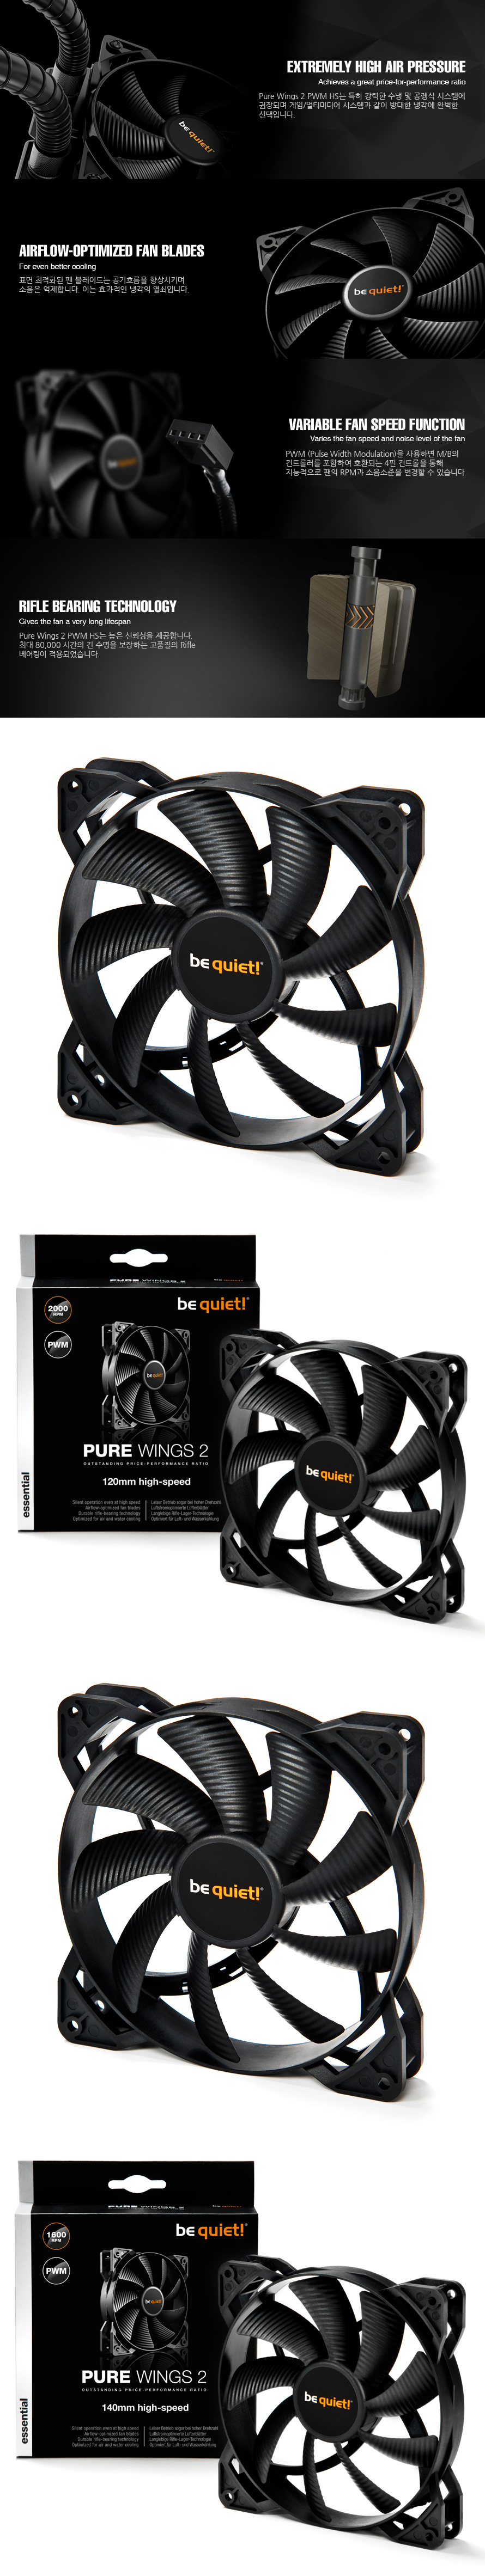 be quiet  PURE WINGS 2 PWM(120mm high-speed)